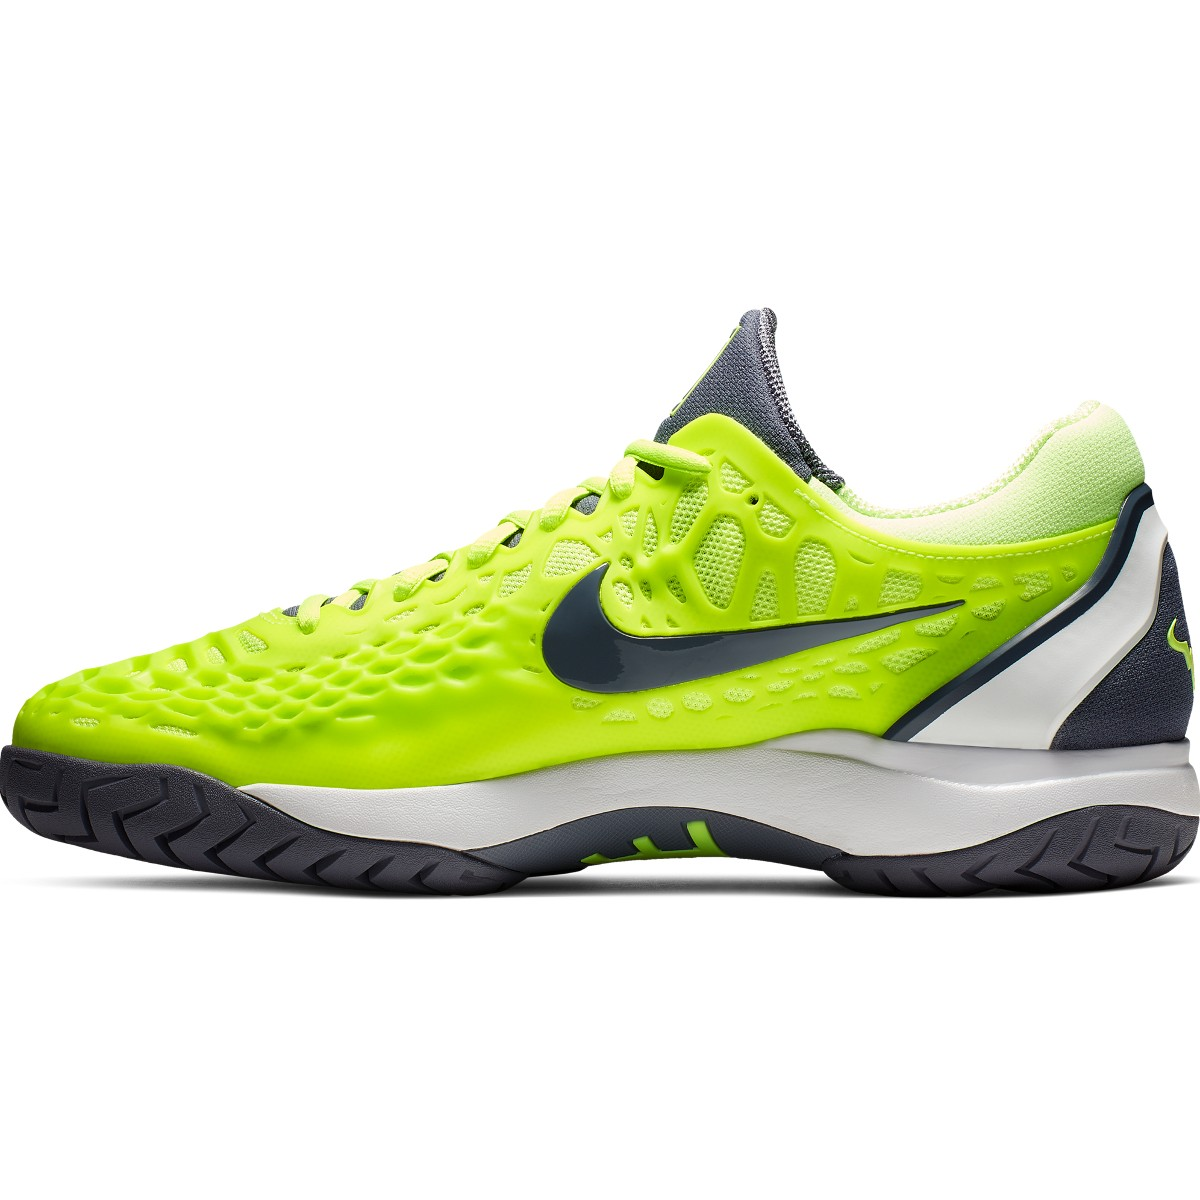 Cage Air Chaussures Zoom 3 Toutes Homme Surfaces Nike nkX8wP0O